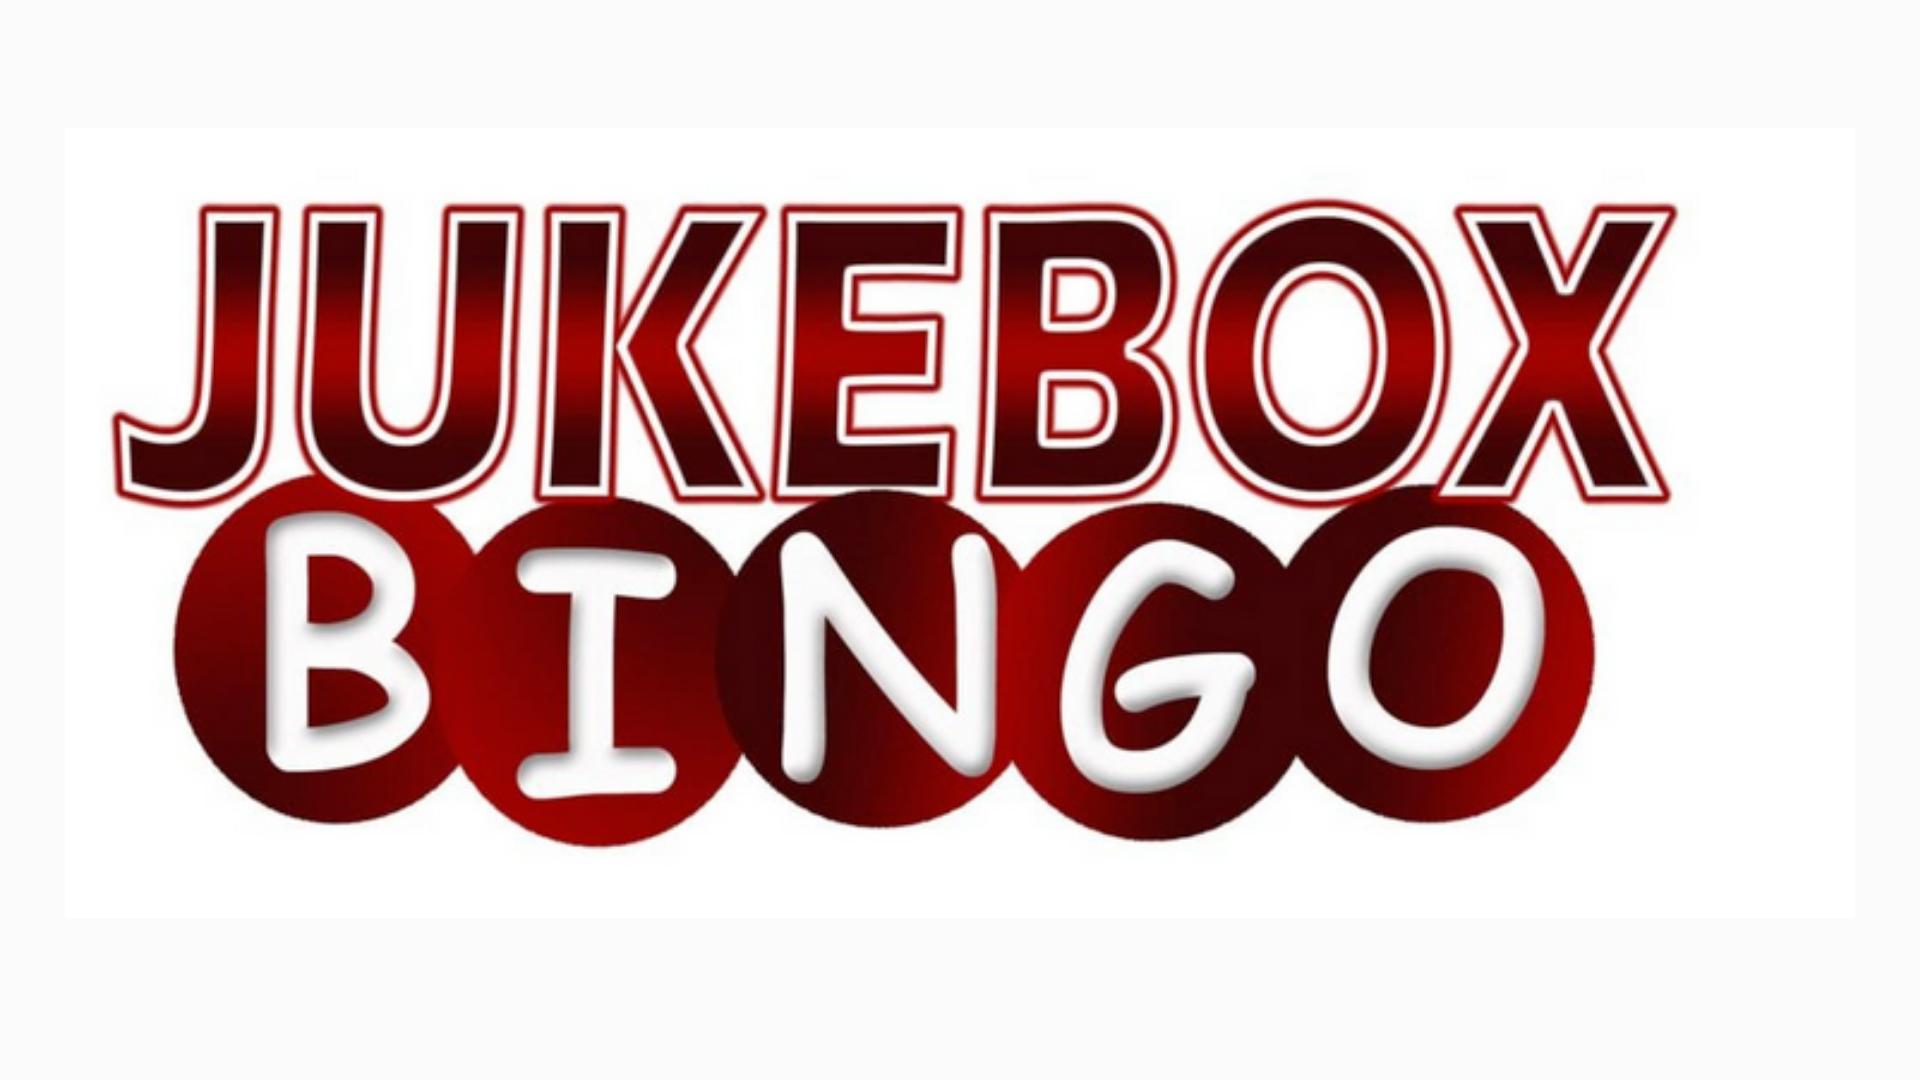 "<a href=""https://www.beth-am.org/event/jukebox-bingo""